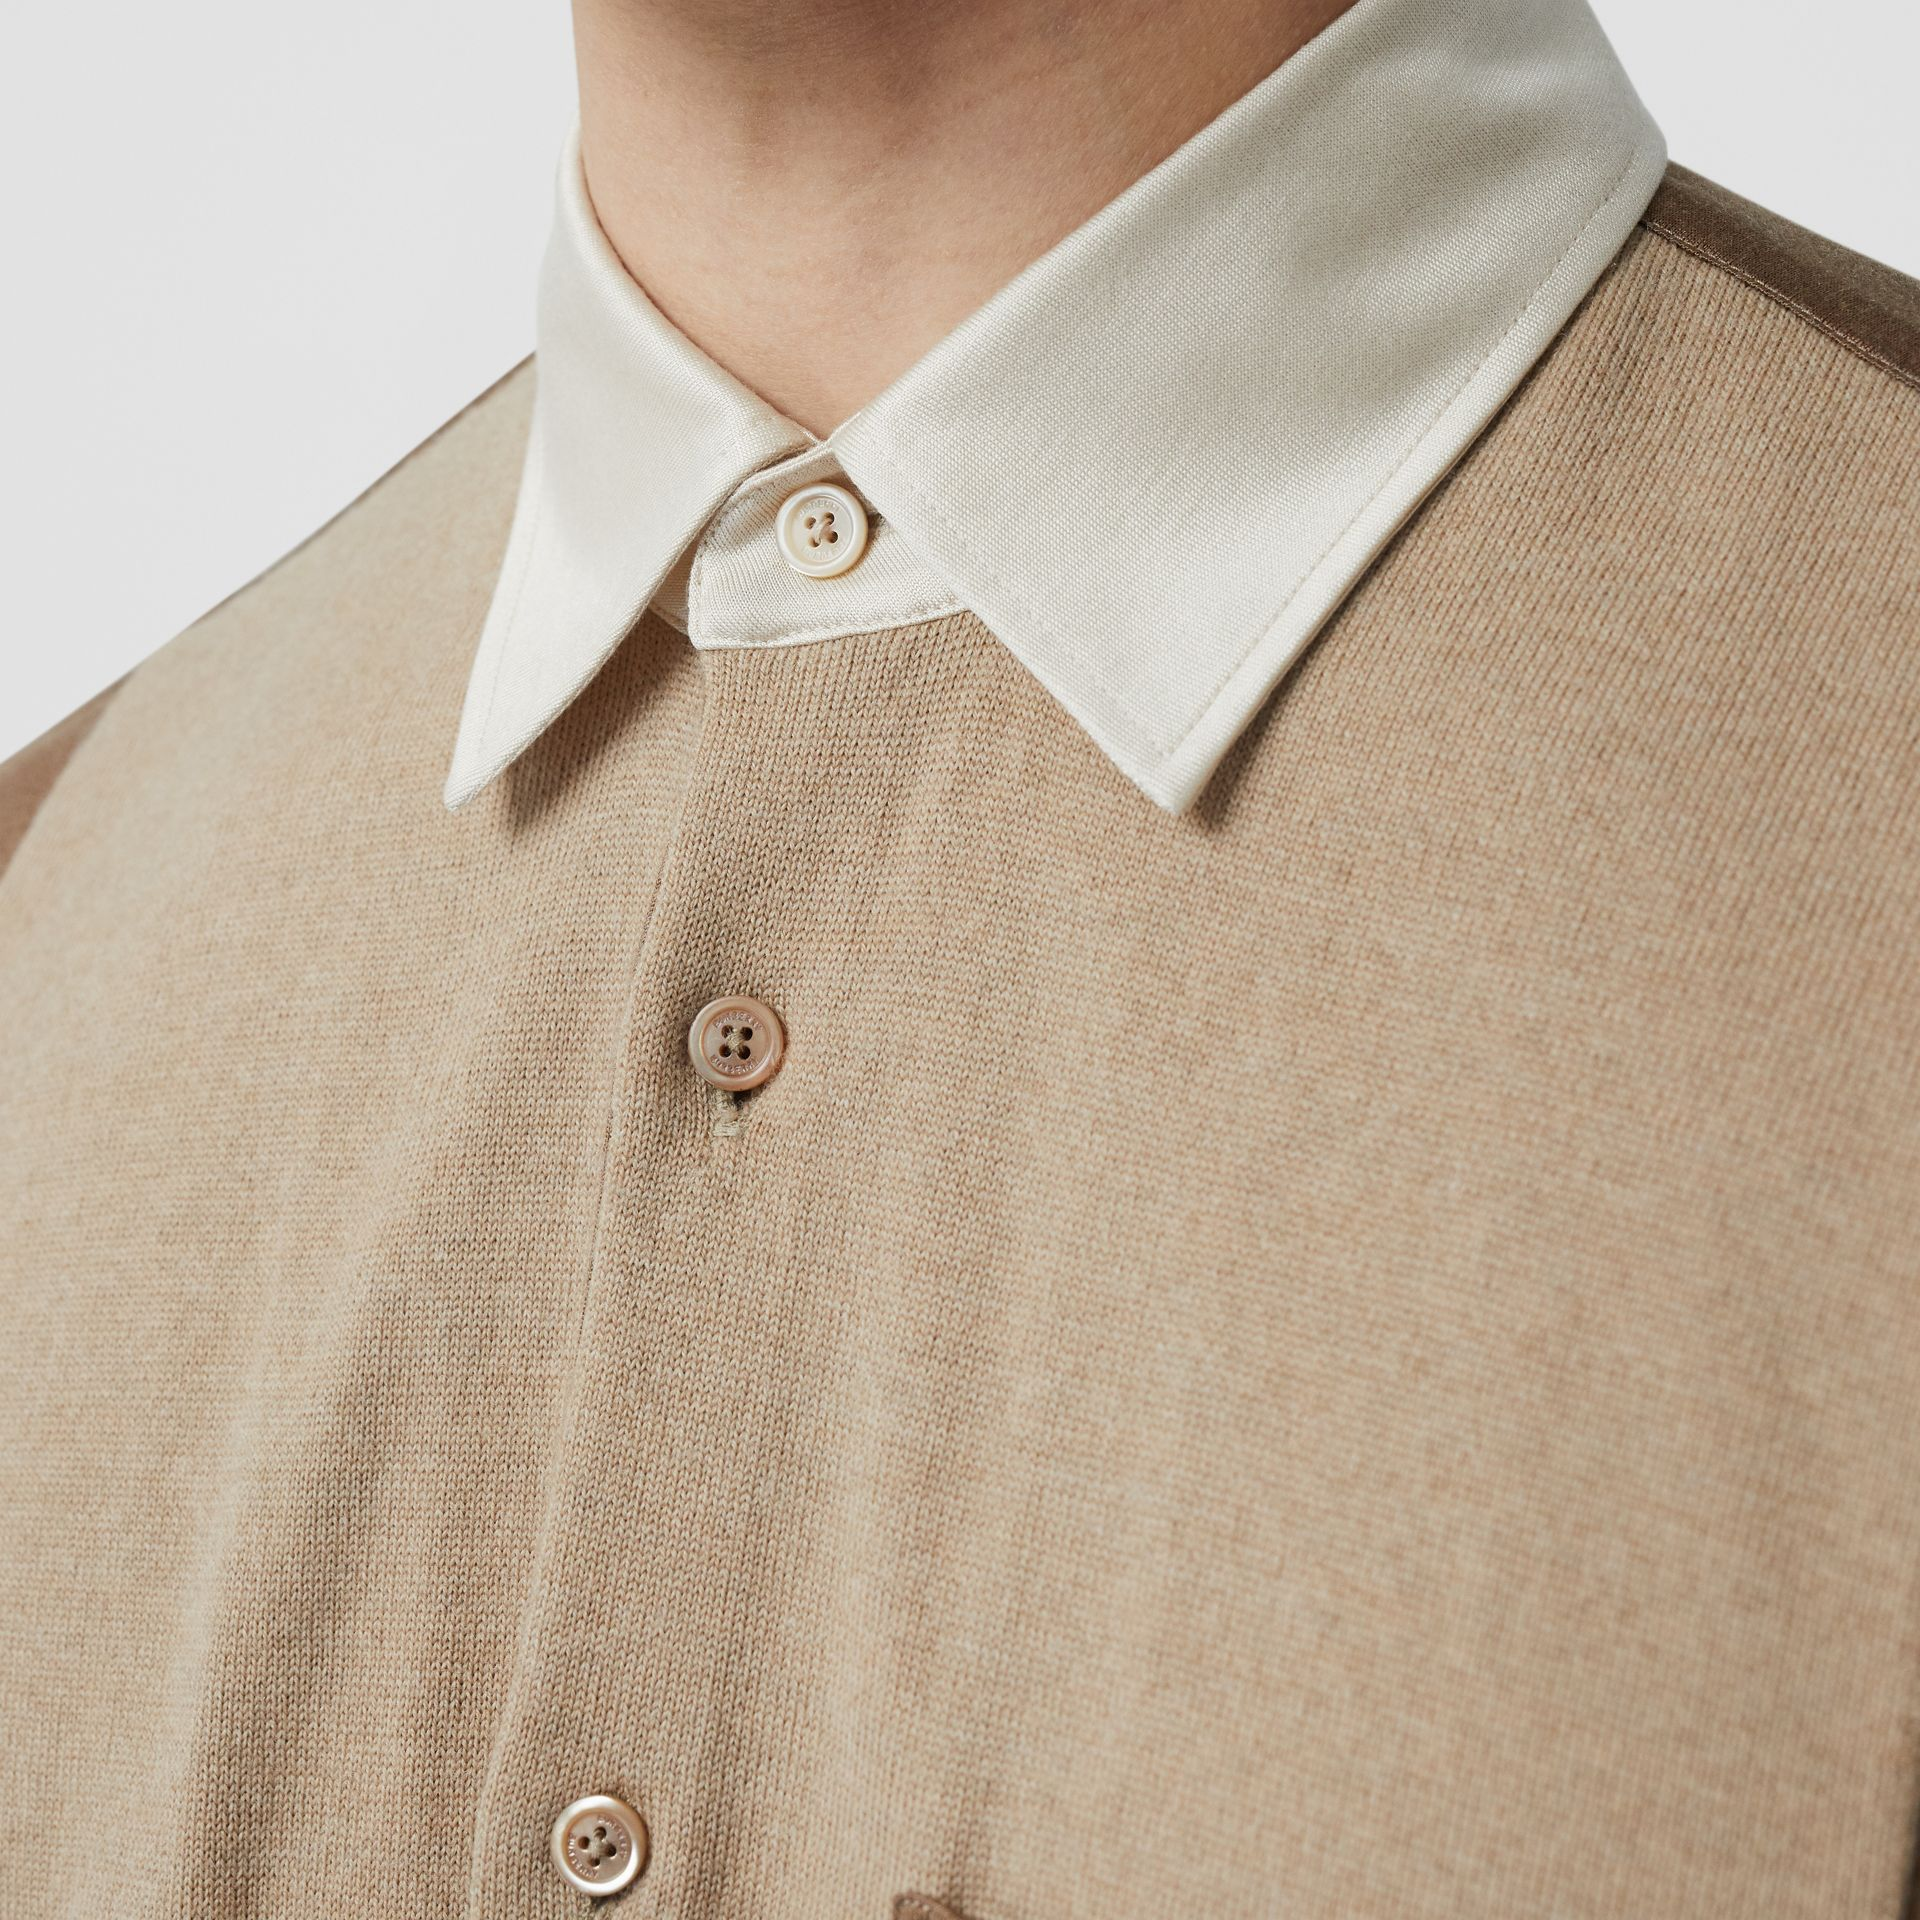 Classic Fit Panelled Silk and Merino Wool Shirt in Warm Camel - Men | Burberry - gallery image 1